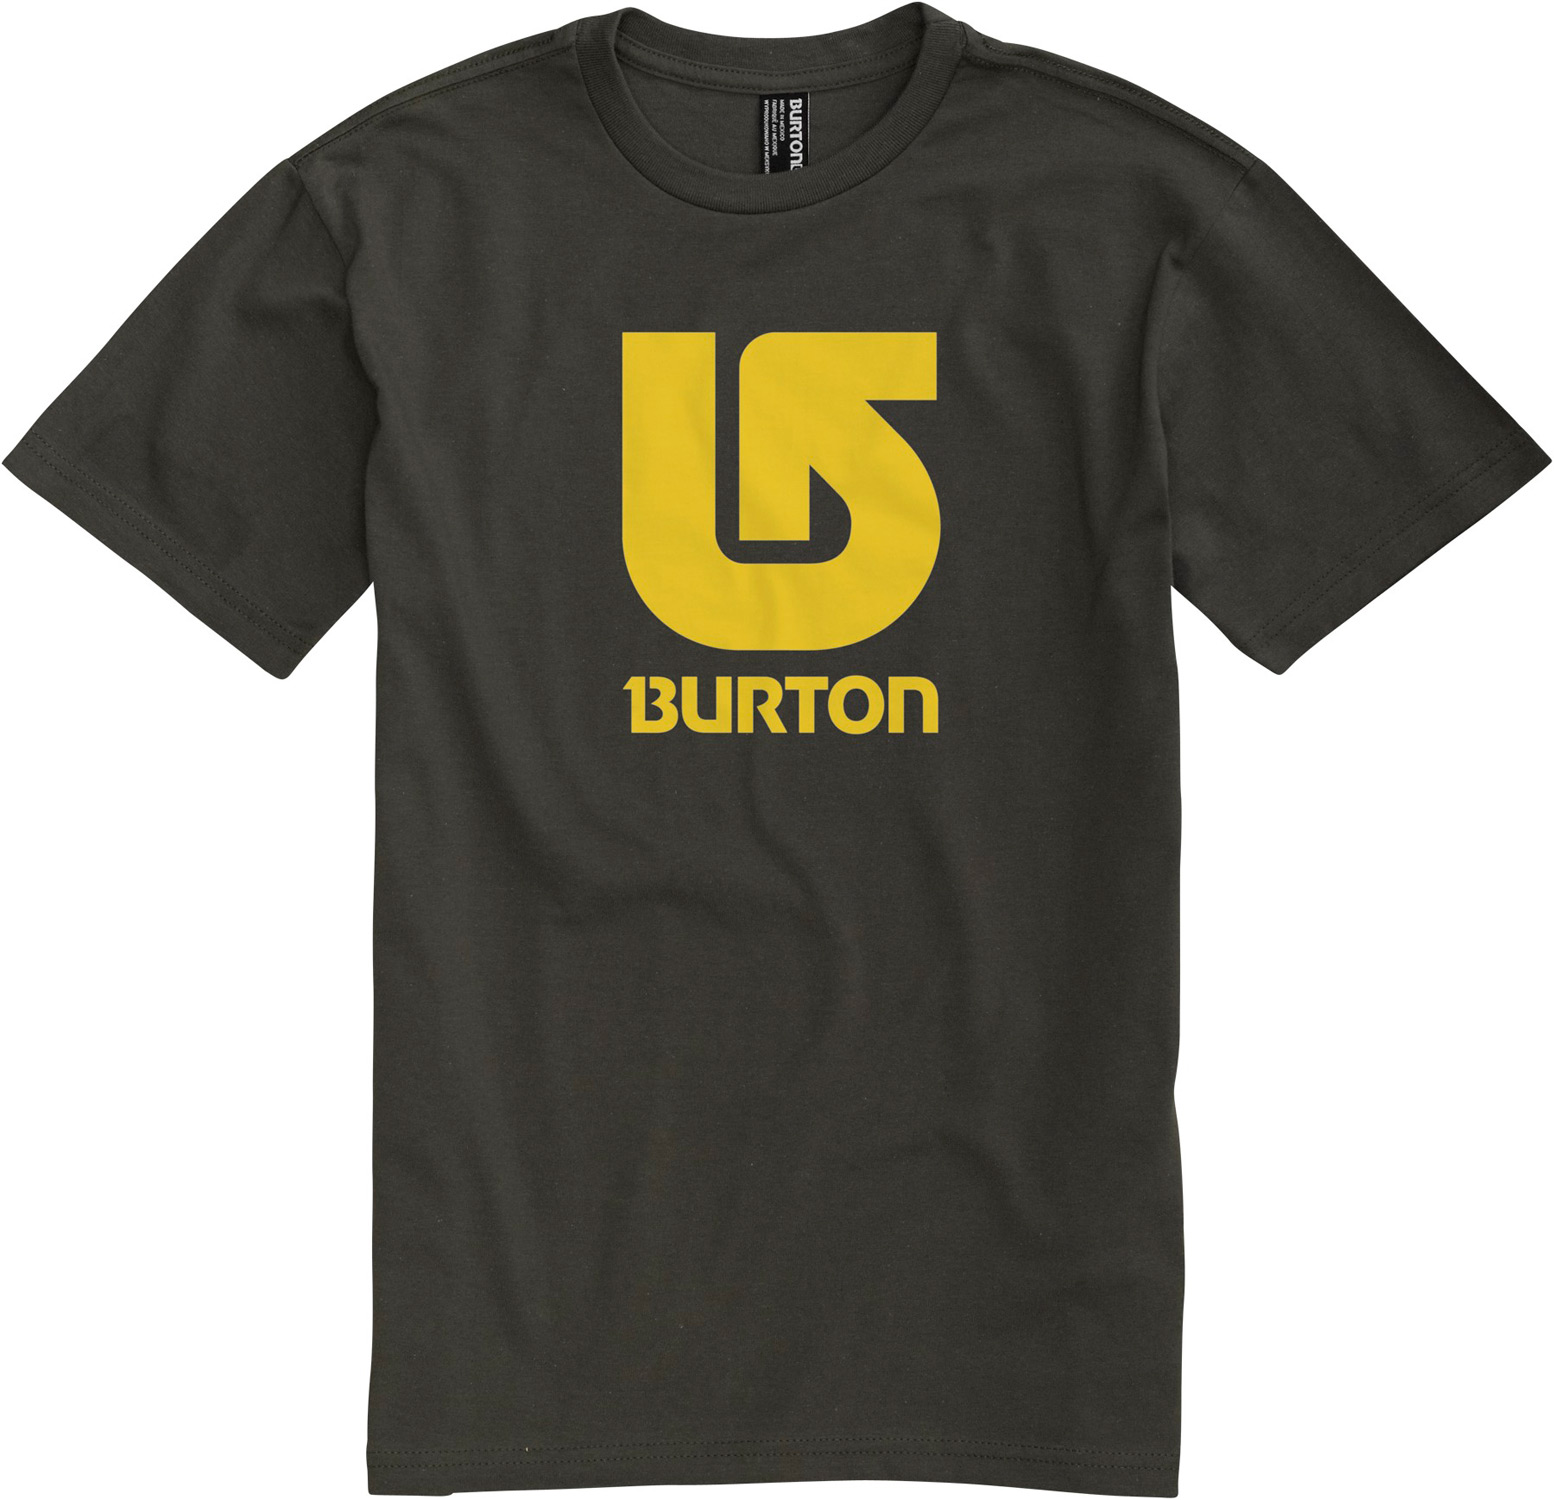 Snowboard Key Features of The Burton Logo Vertical T-Shirt: Regular Fit Crew Neck Short Sleeve 100% Cotton Screen Print on Front and Back Regular Fit XS-XL - $15.95